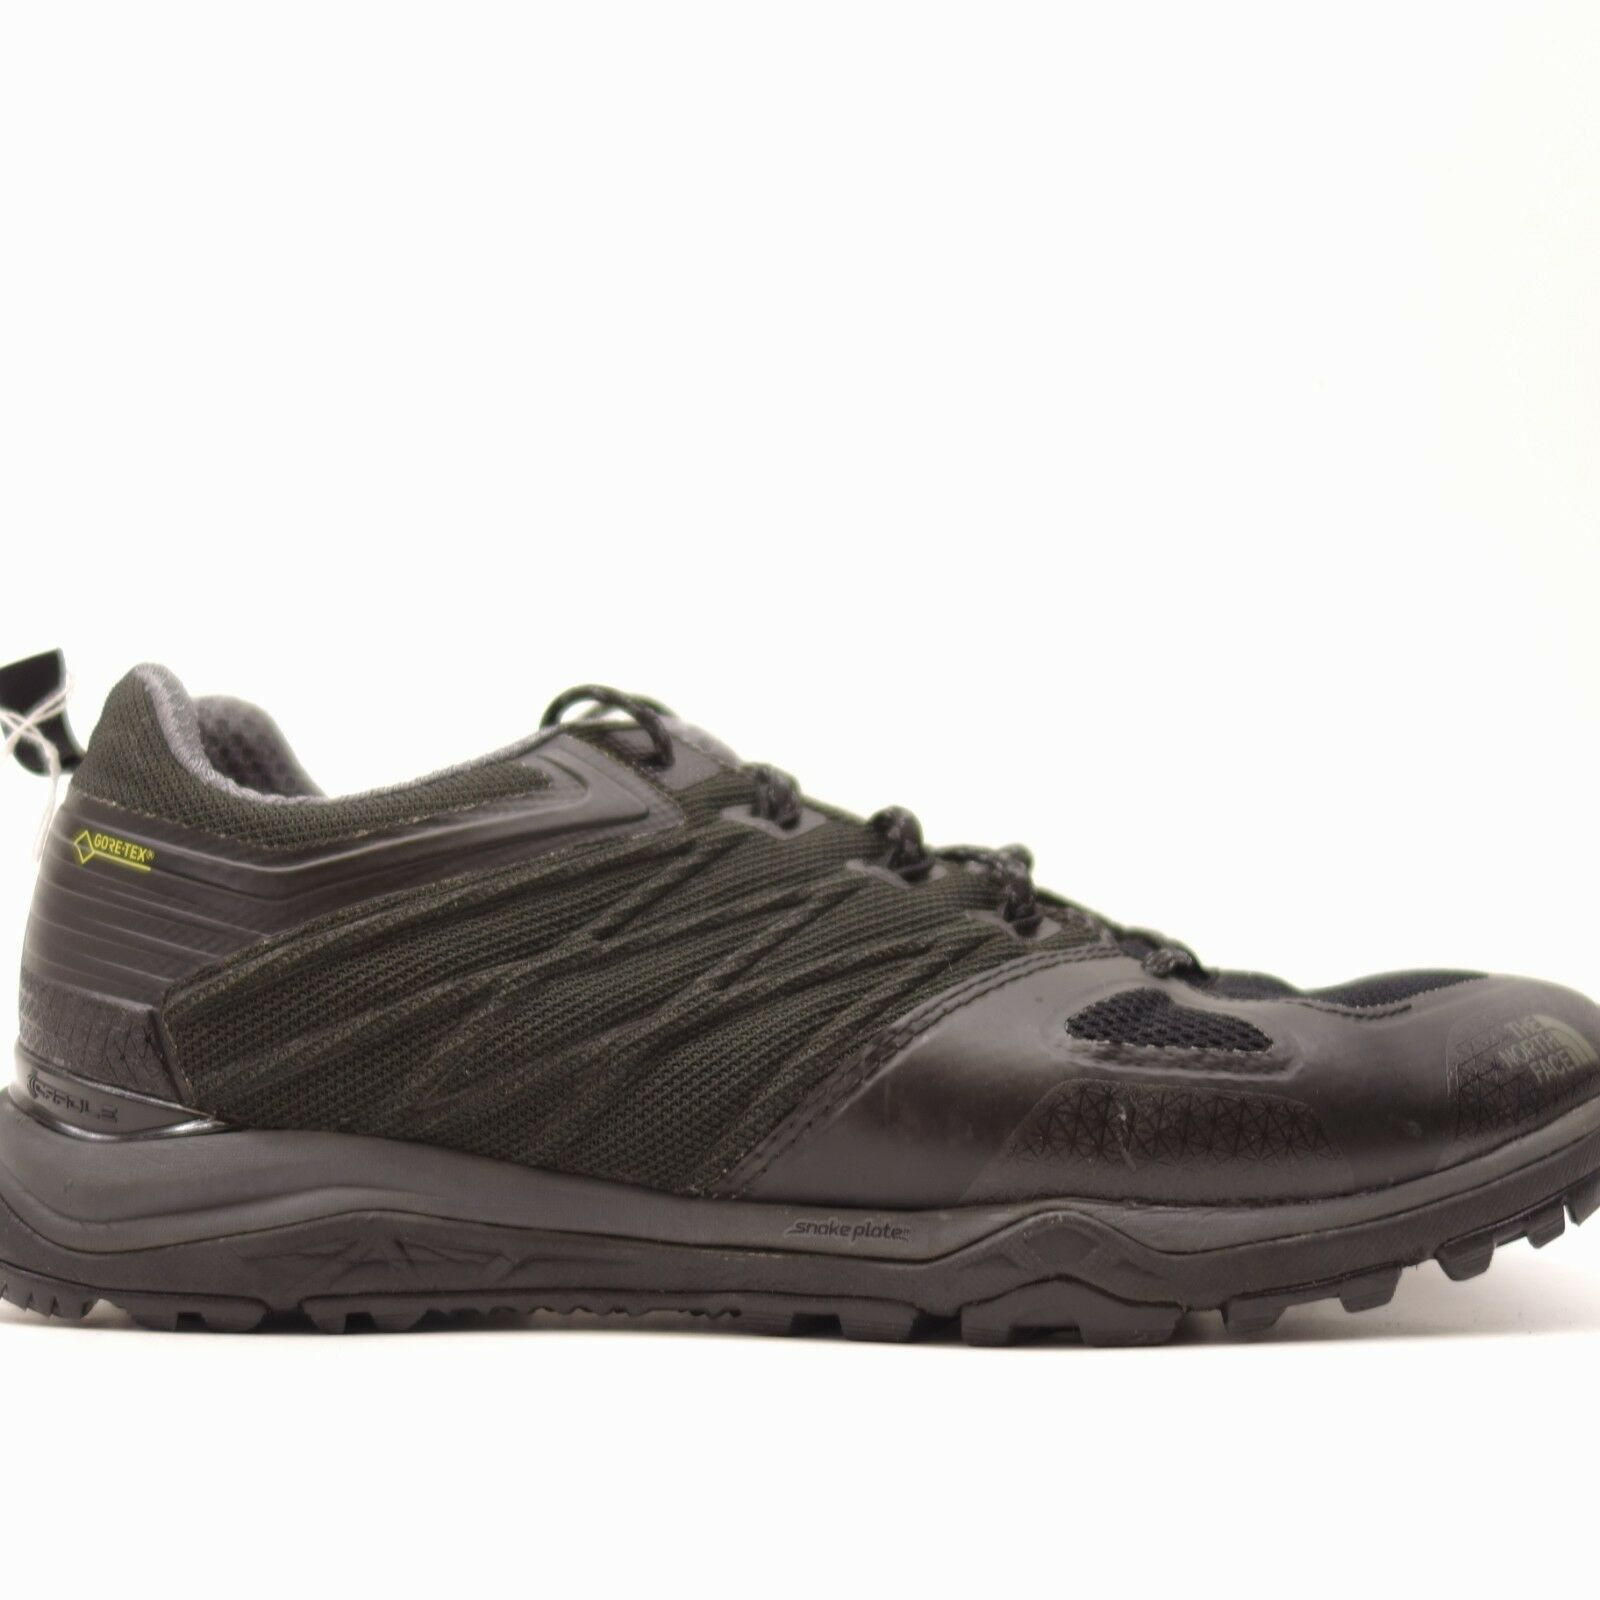 The North Face Uomo Ultra Fastpack II GTX Athletic Trail Hiking Shoes Size 11